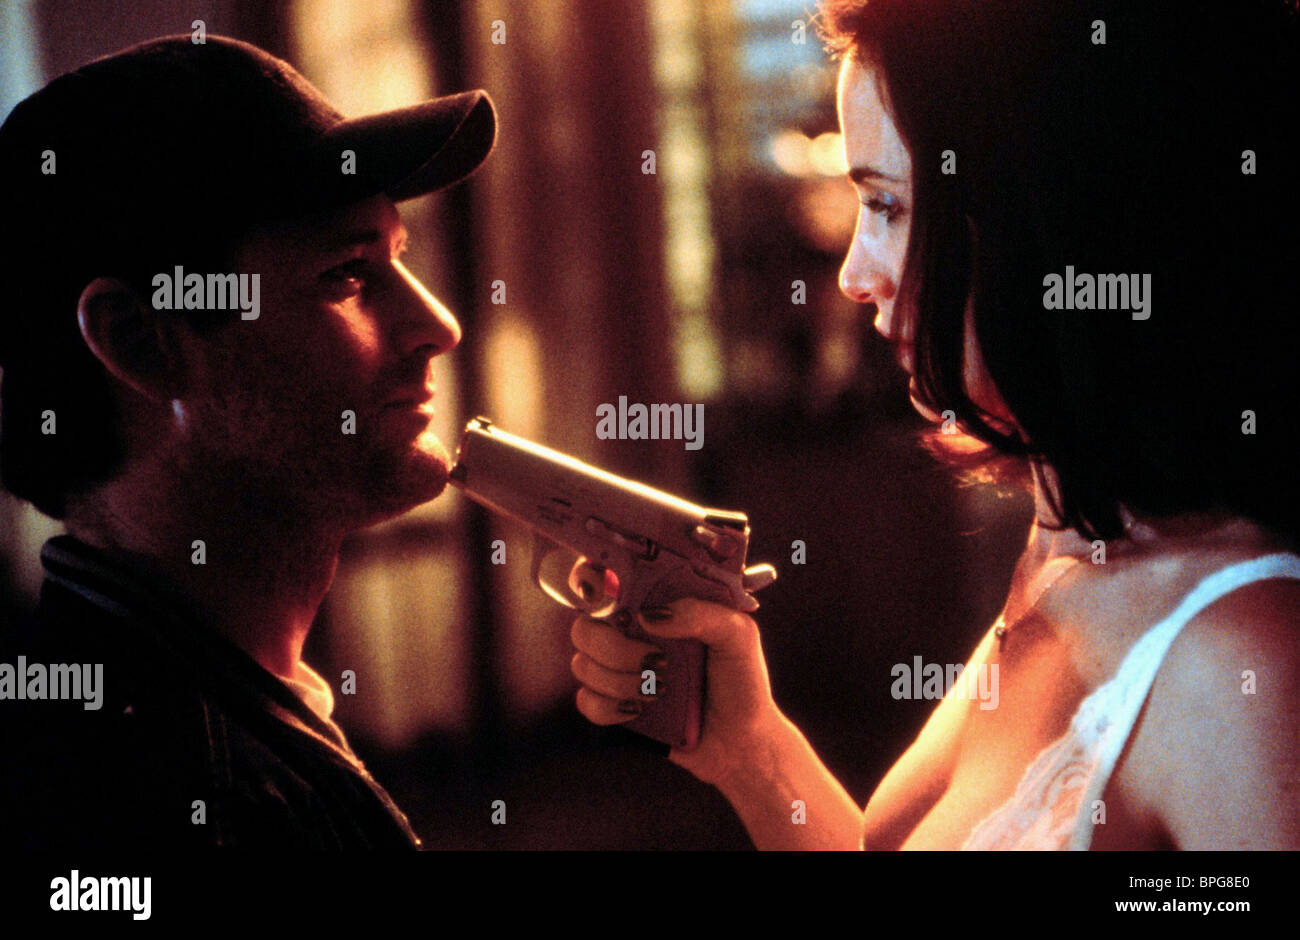 Bill Pullman Andie Macdowell The End Of Violence 1997 Stock Photo Alamy The End of Violence